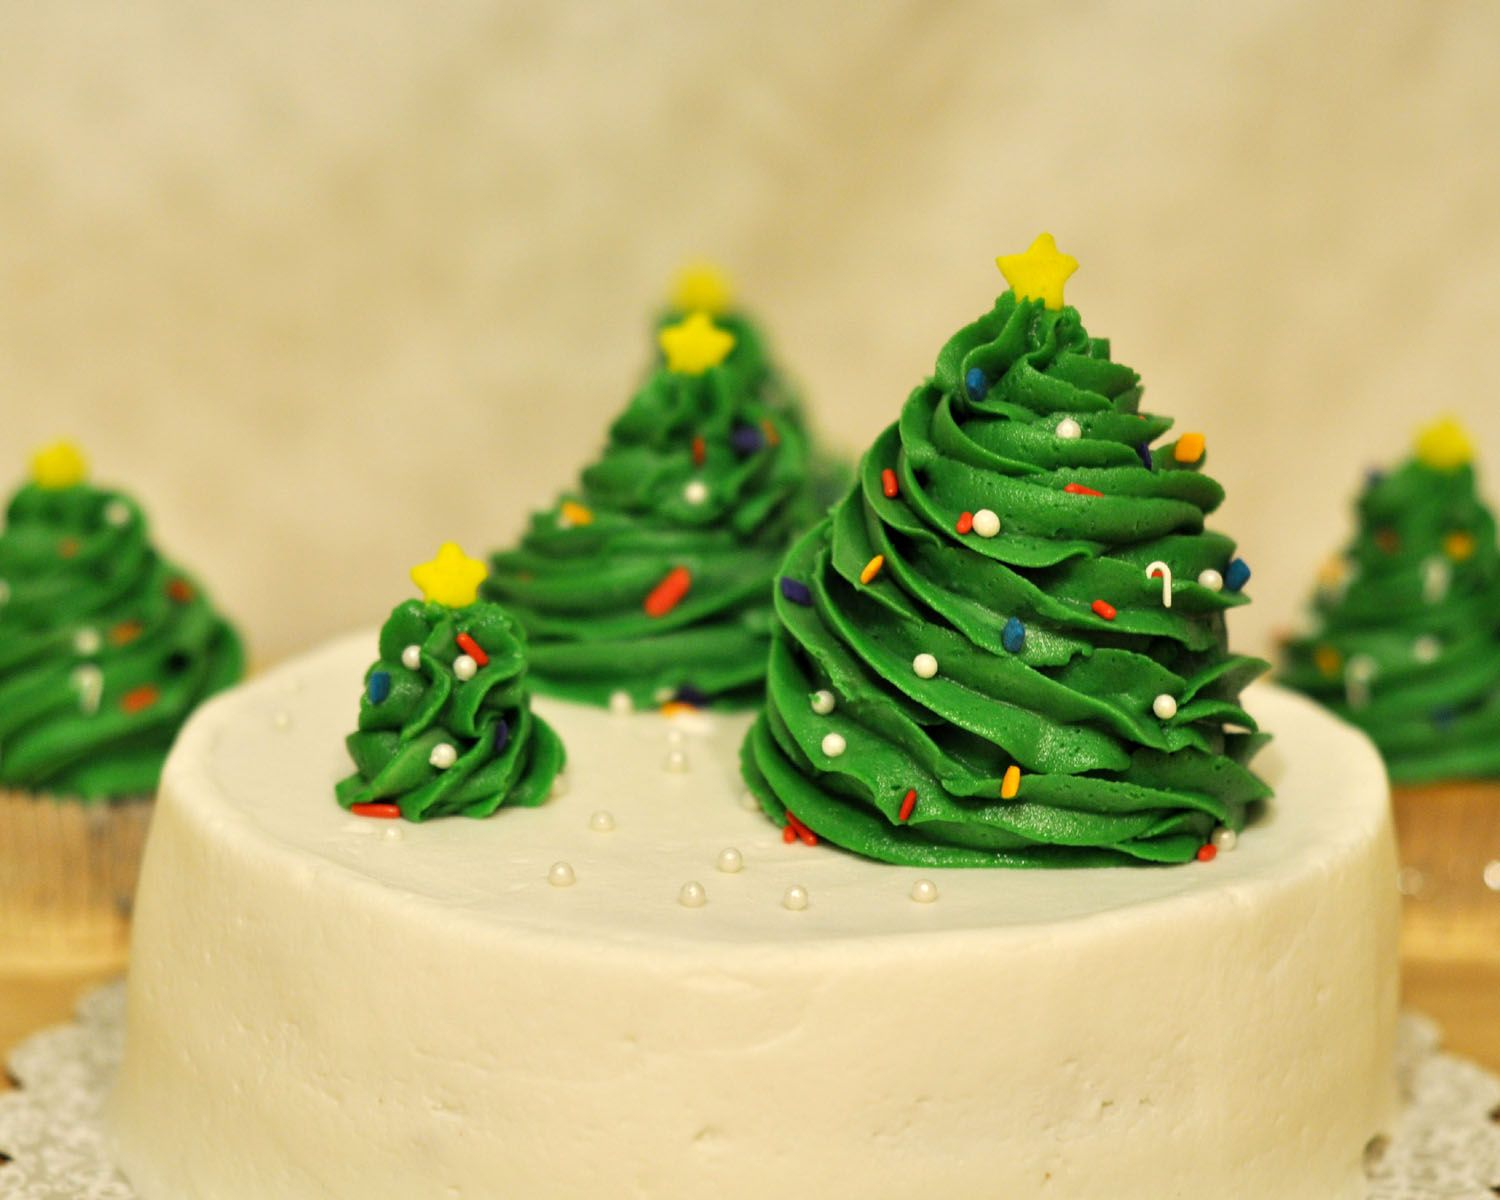 Download Full Size Image Cake Decorating Ideas 1500x1200 Featured Christmas Cakes Easy Easy Christmas Cake Decorating Ideas Christmas Cake Decorations